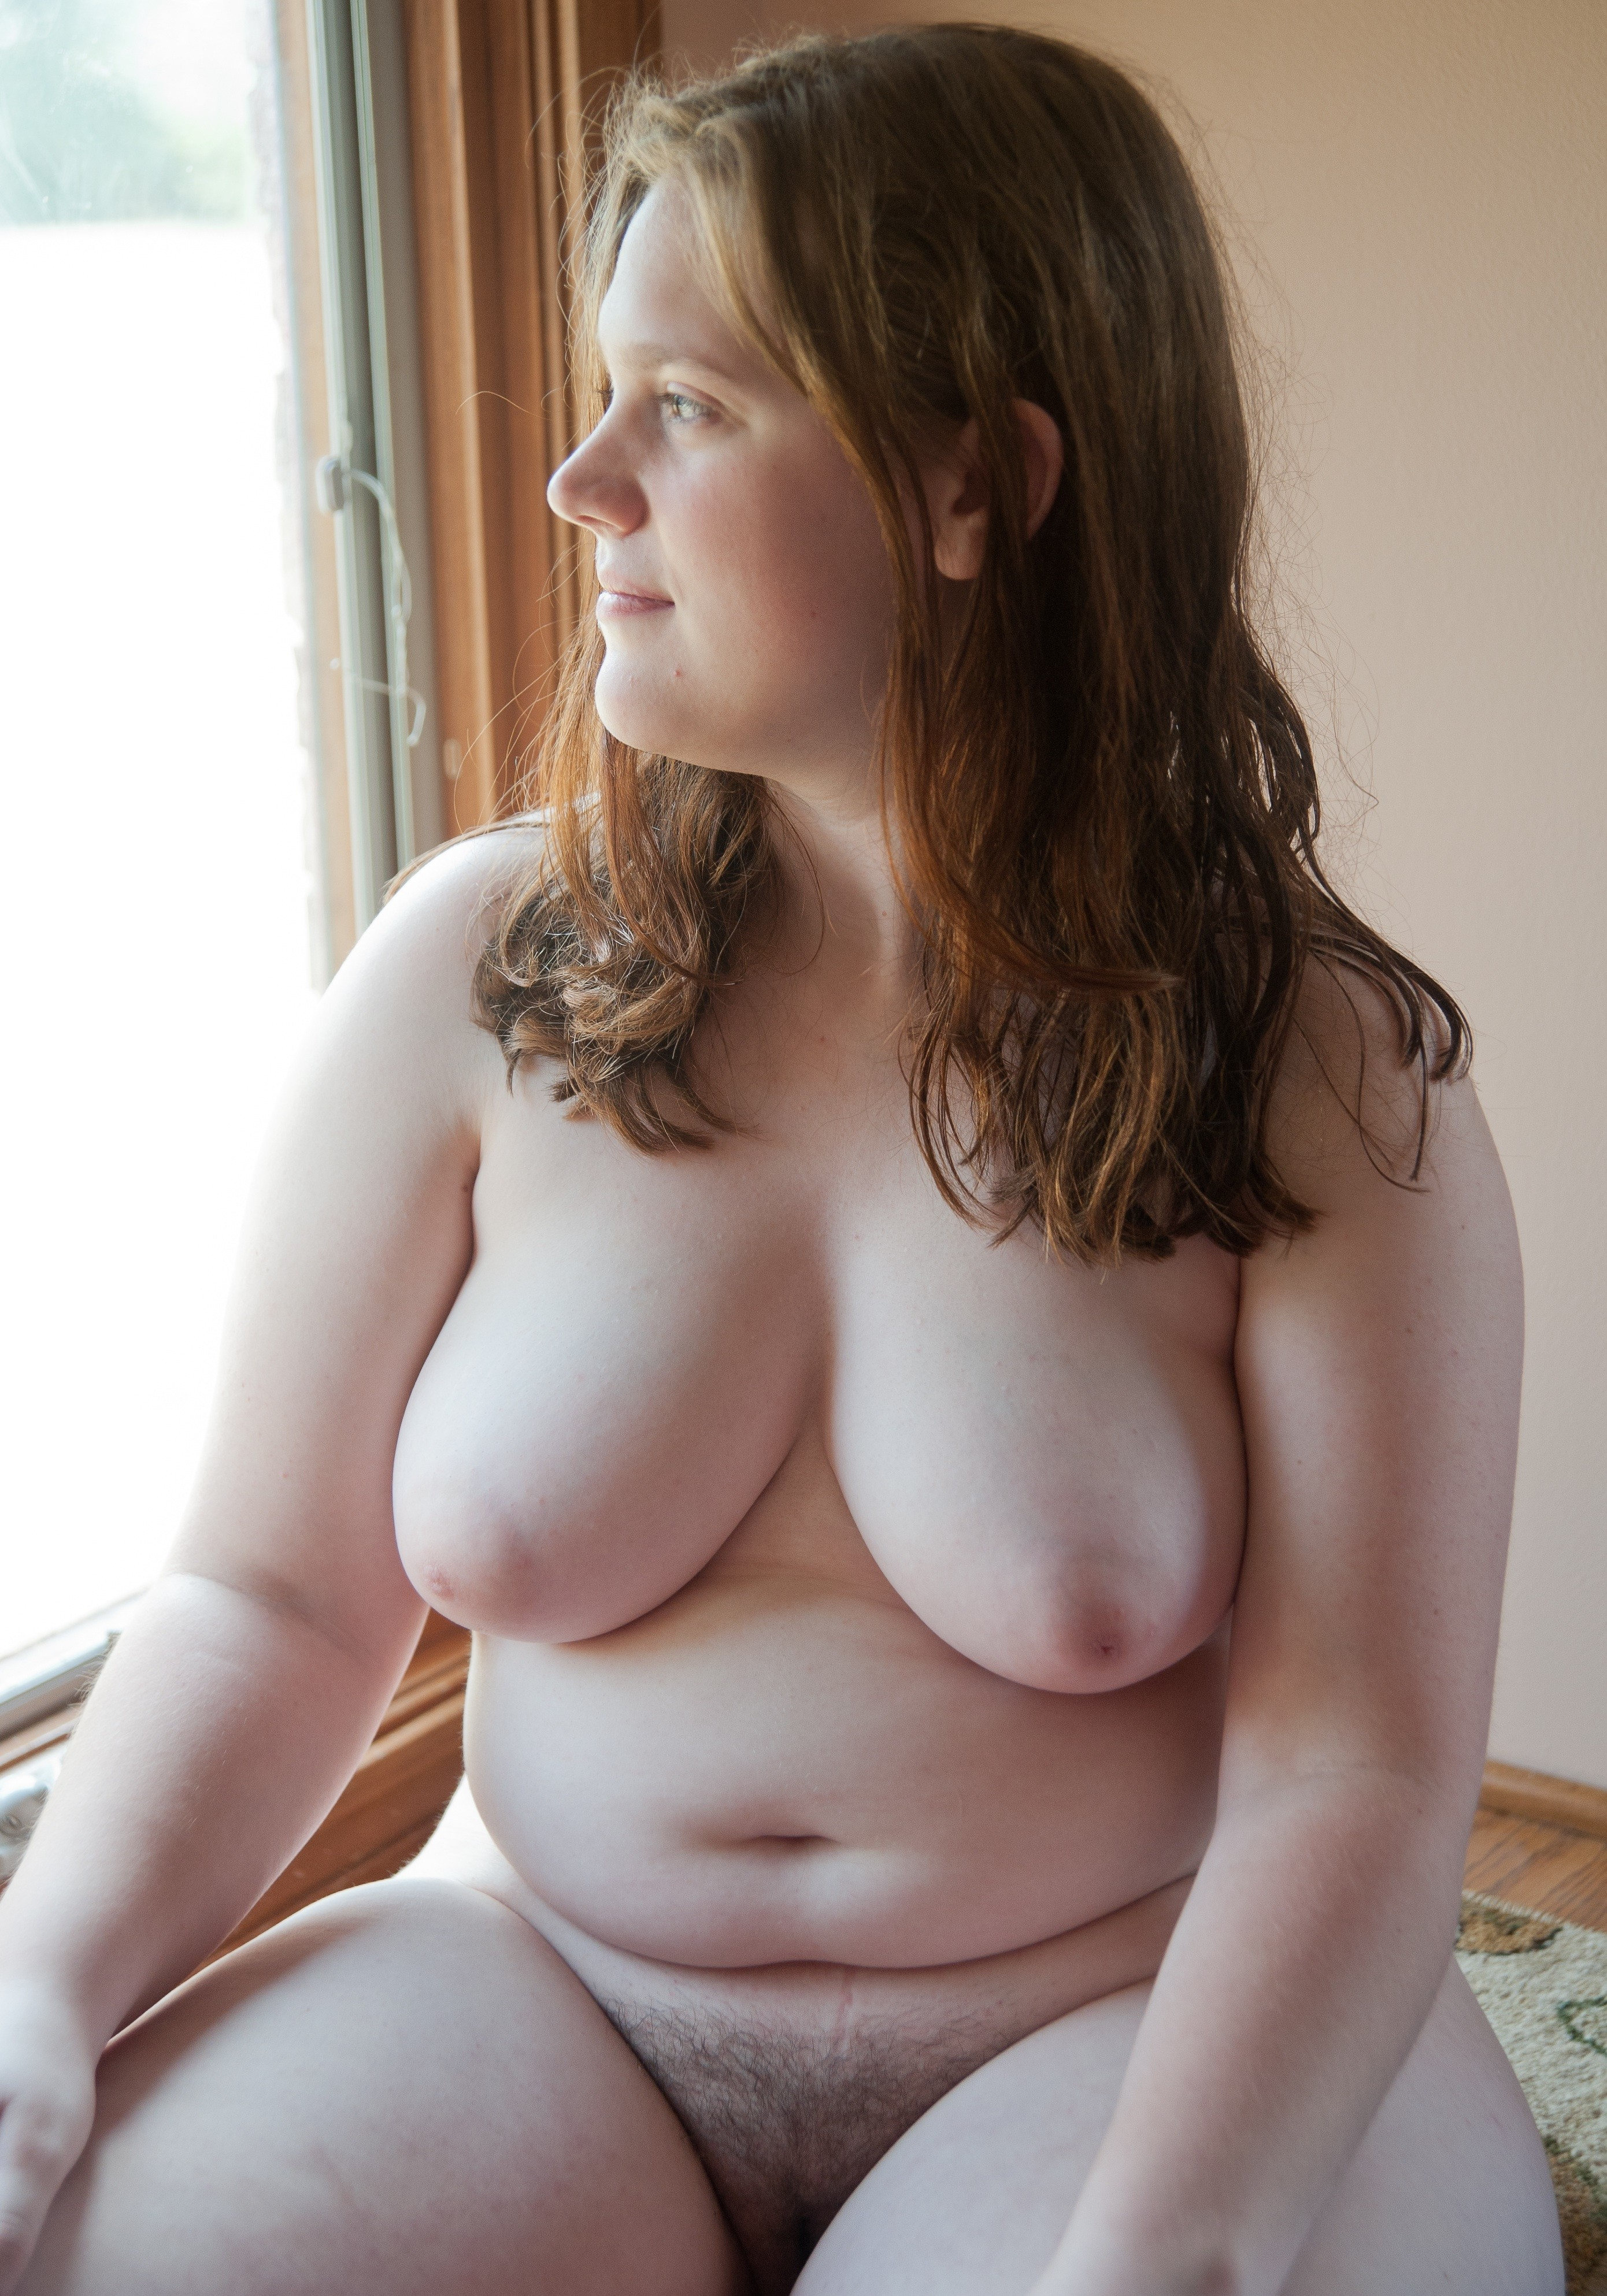 My wife showing her pussy hair from pentie